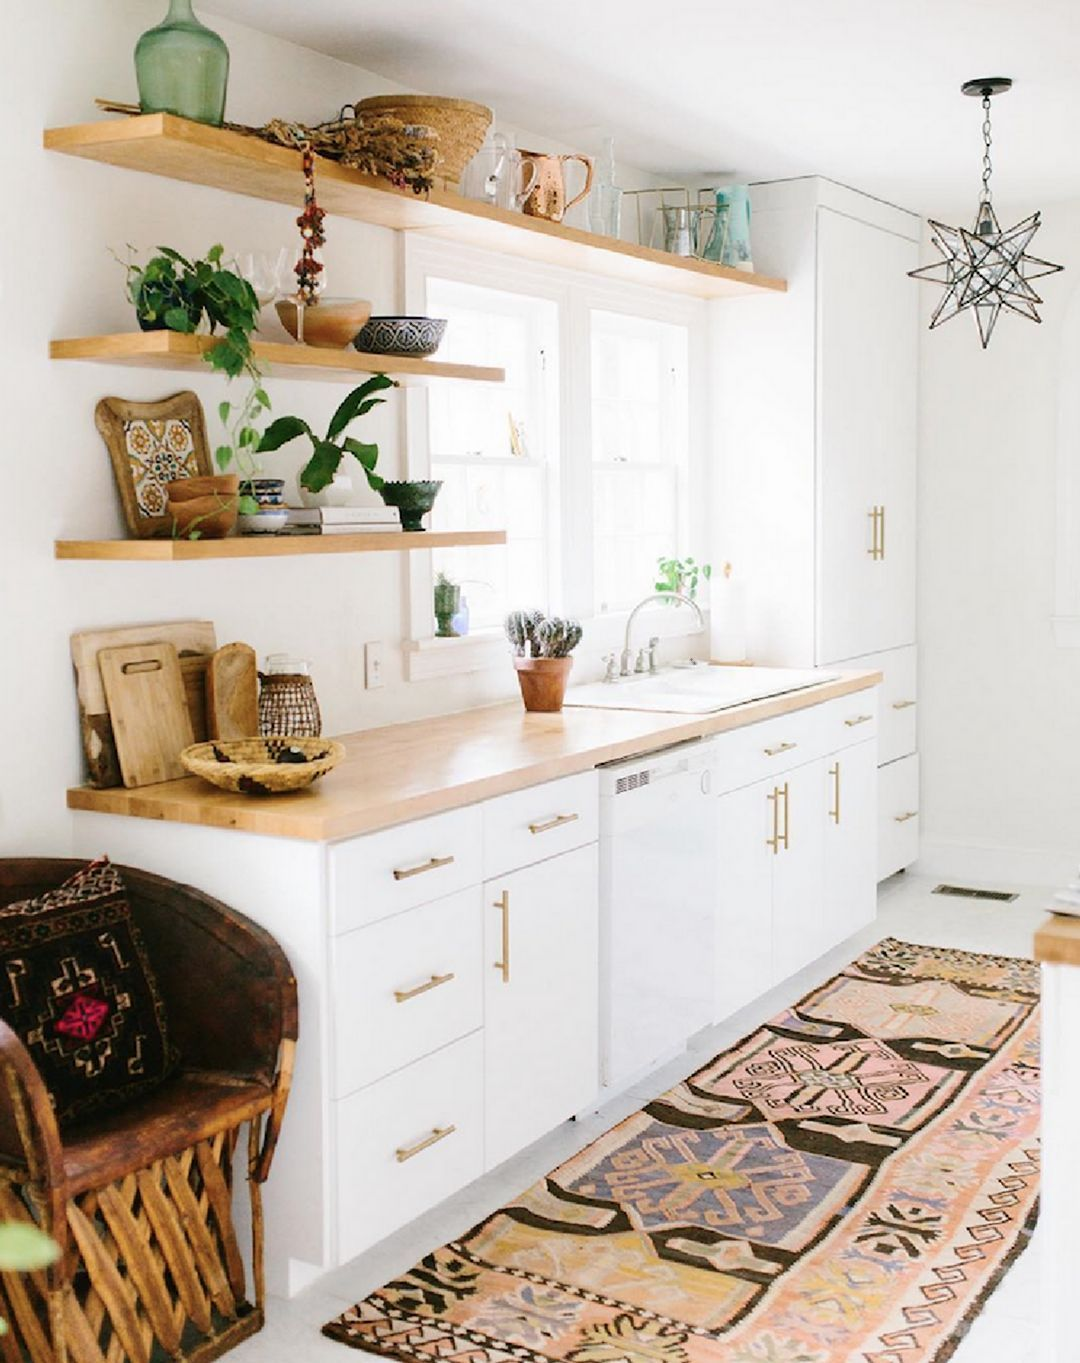 15 awesome bohemian kitchen design ideas for comfortable cooking in 2020 boho kitchen on boho chic interior design kitchen id=68187